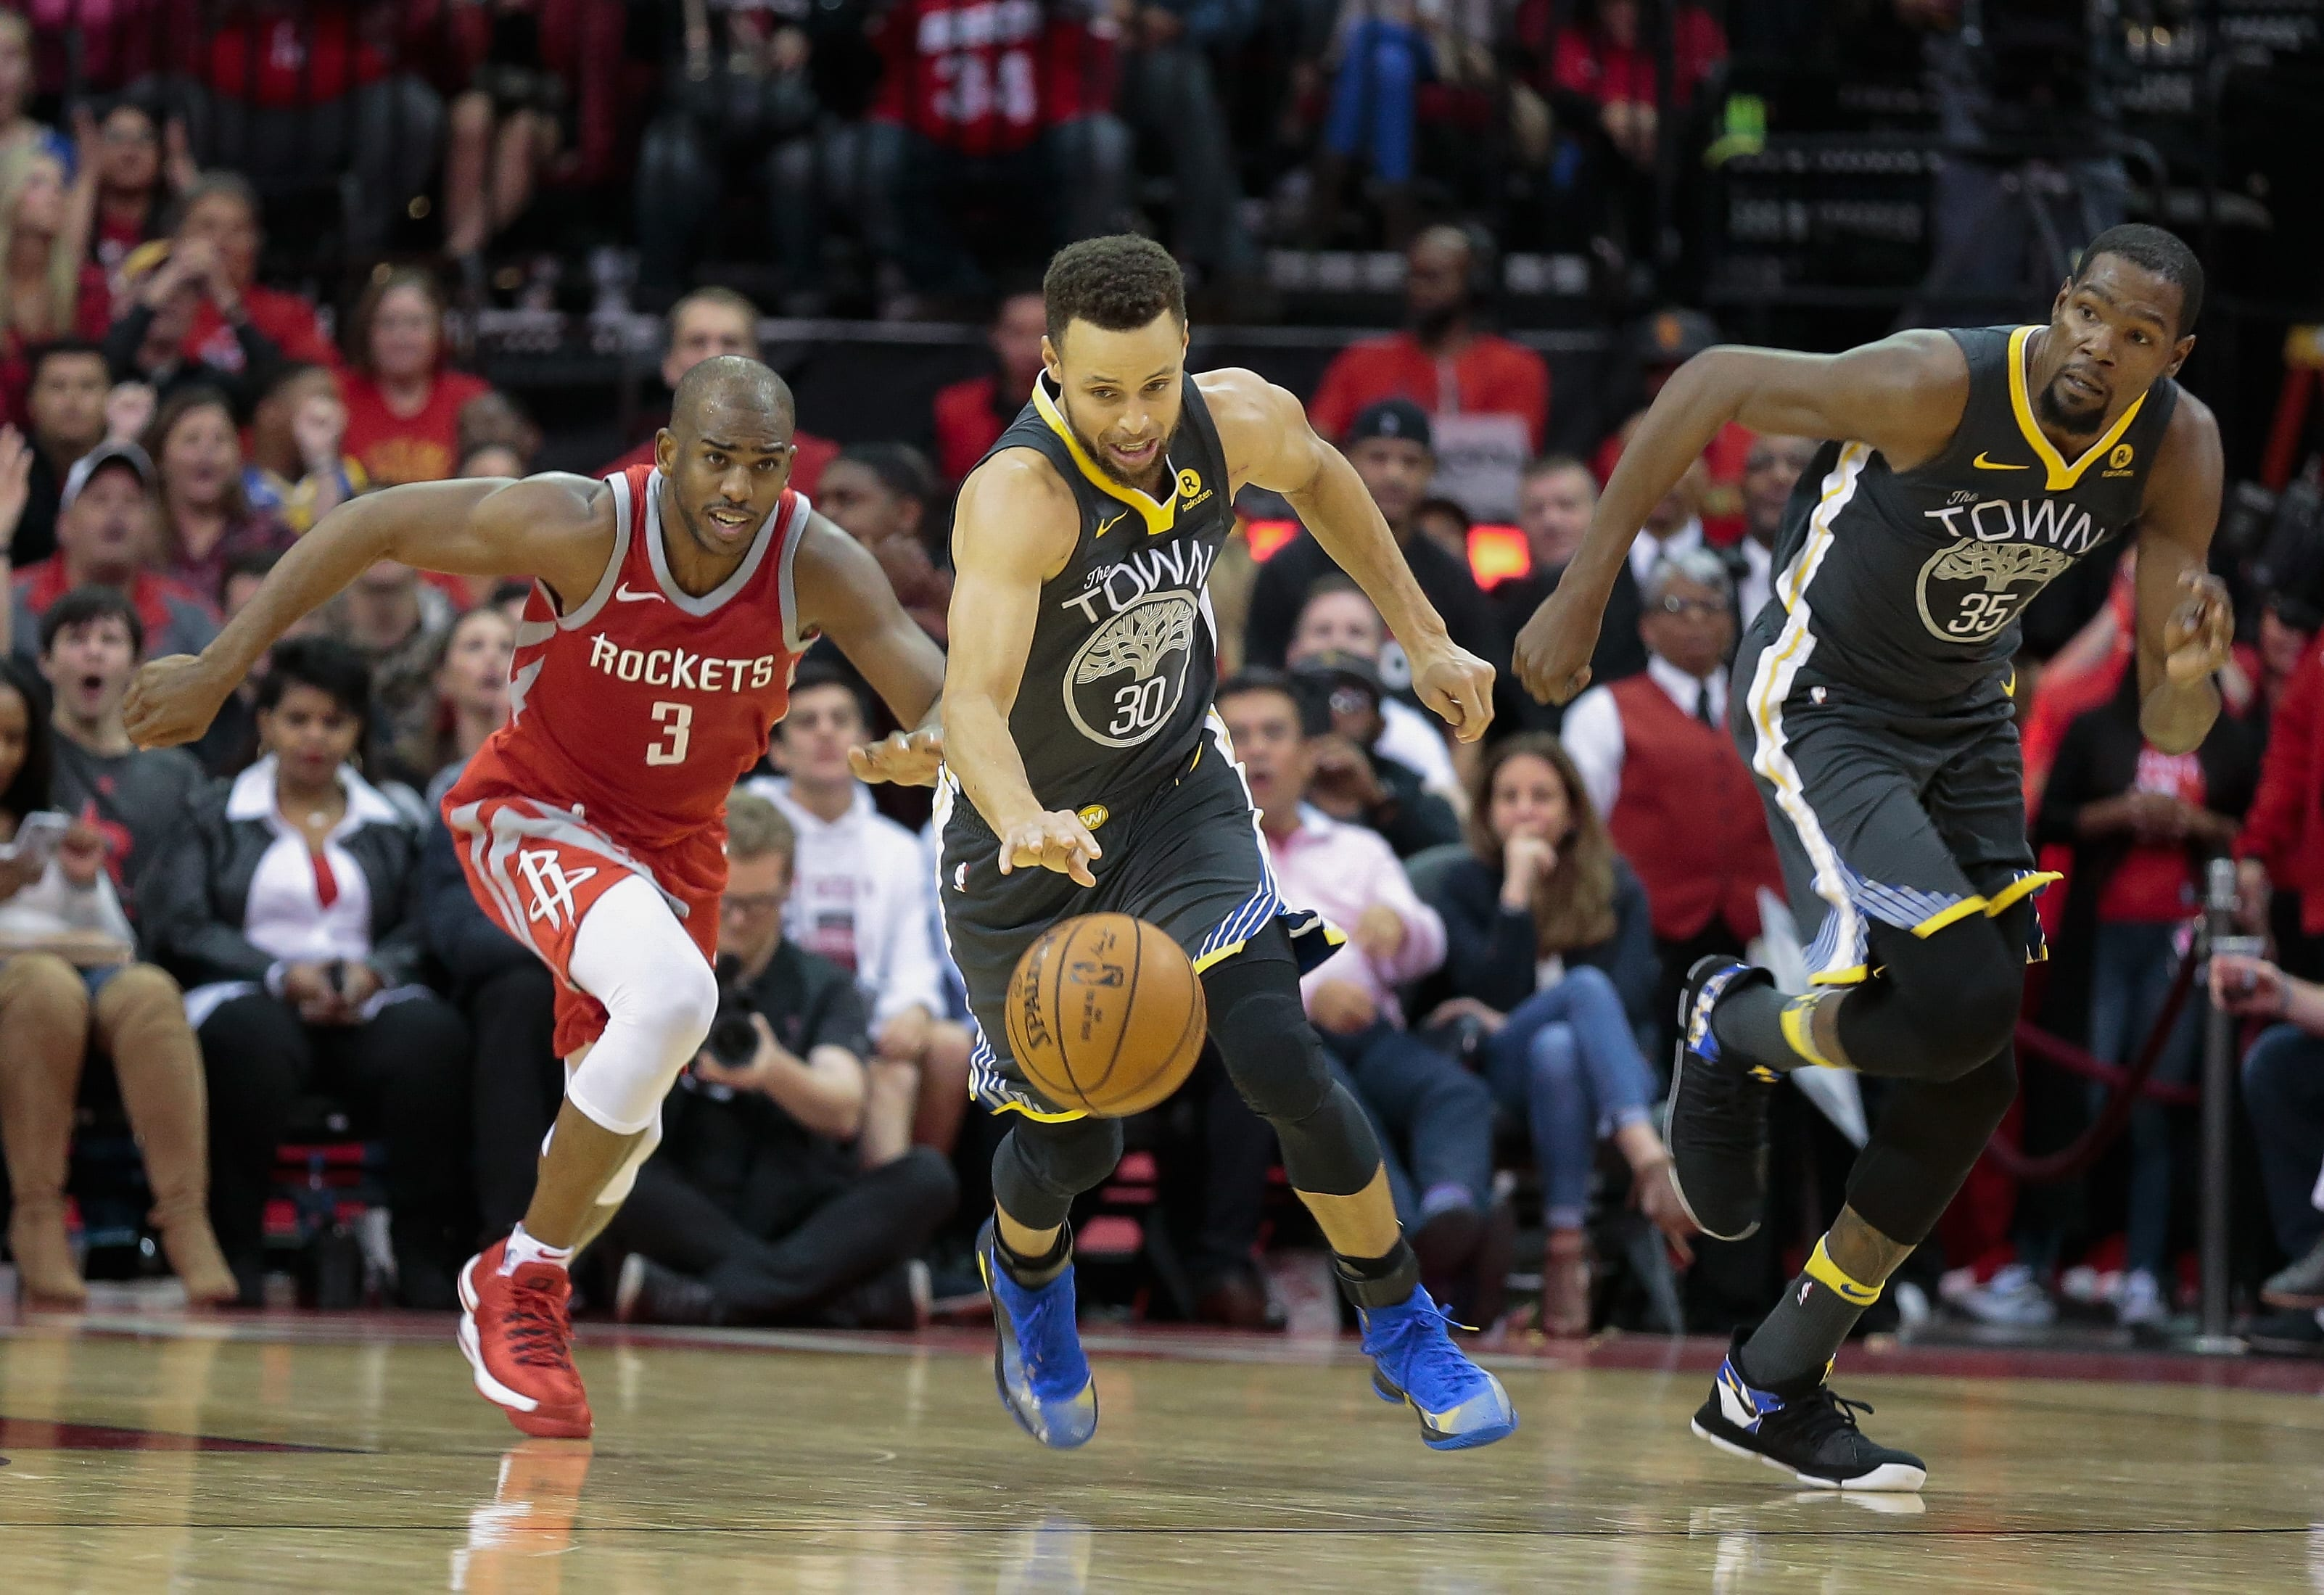 Steph Curry plays against the Rockets.